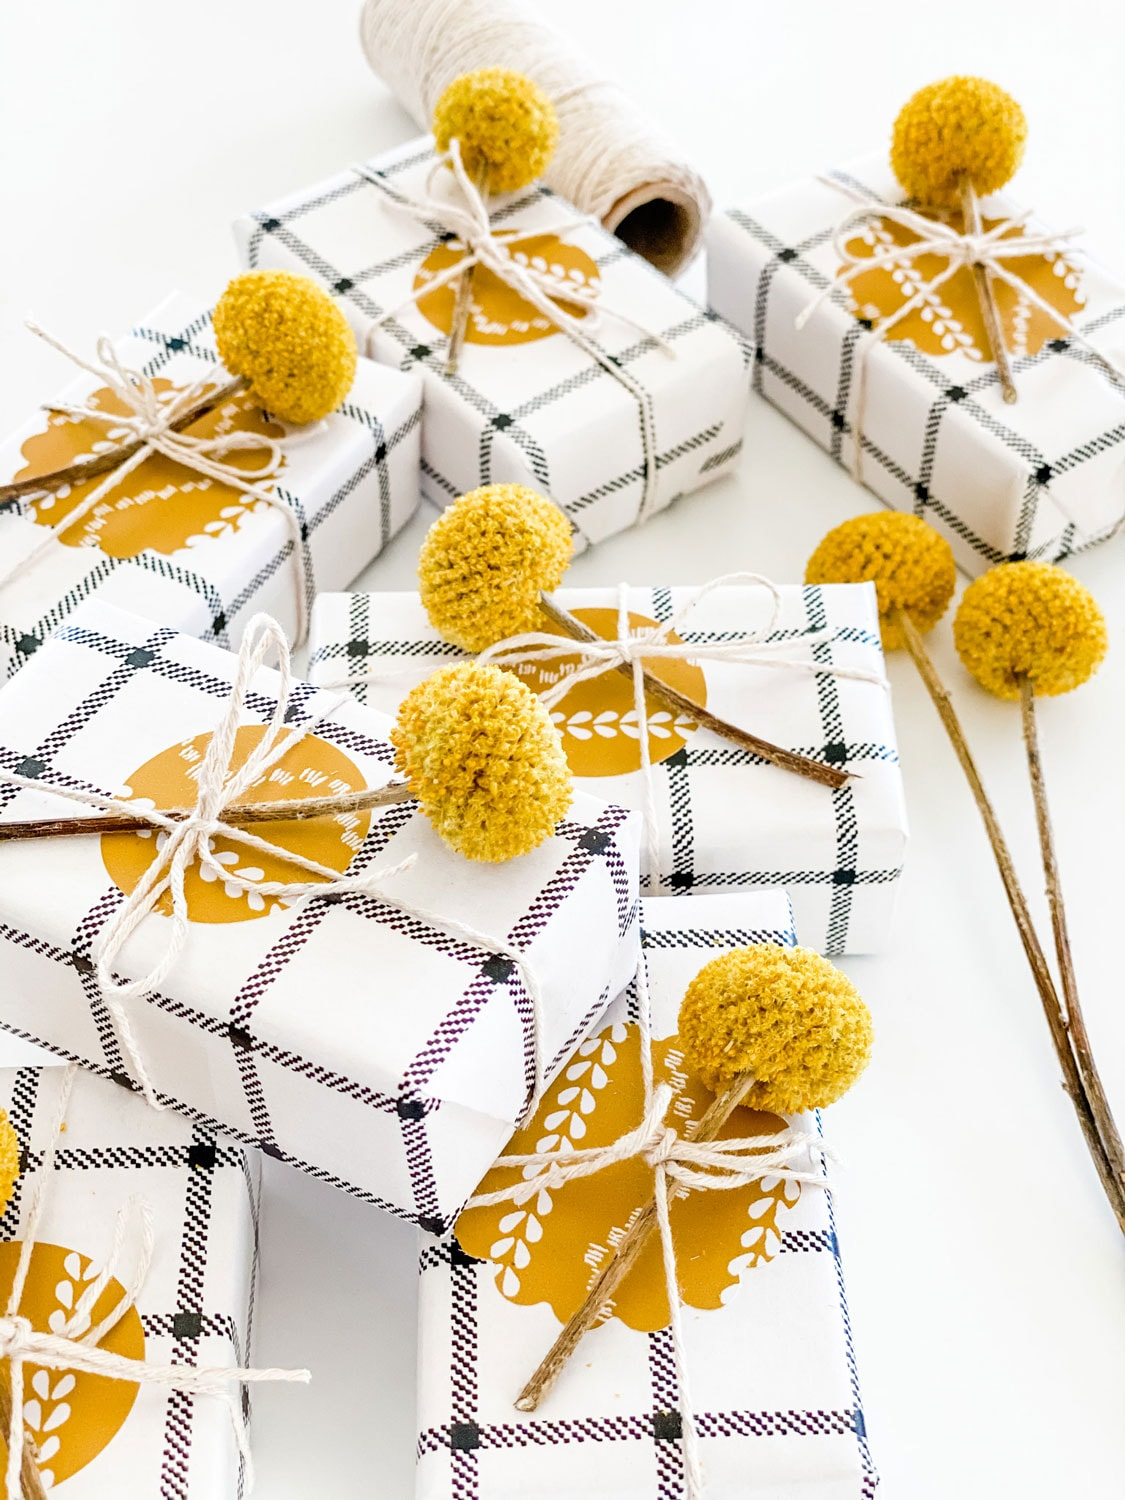 small wrapped gifts with gold wallpaper shapes and billy ball adorning package